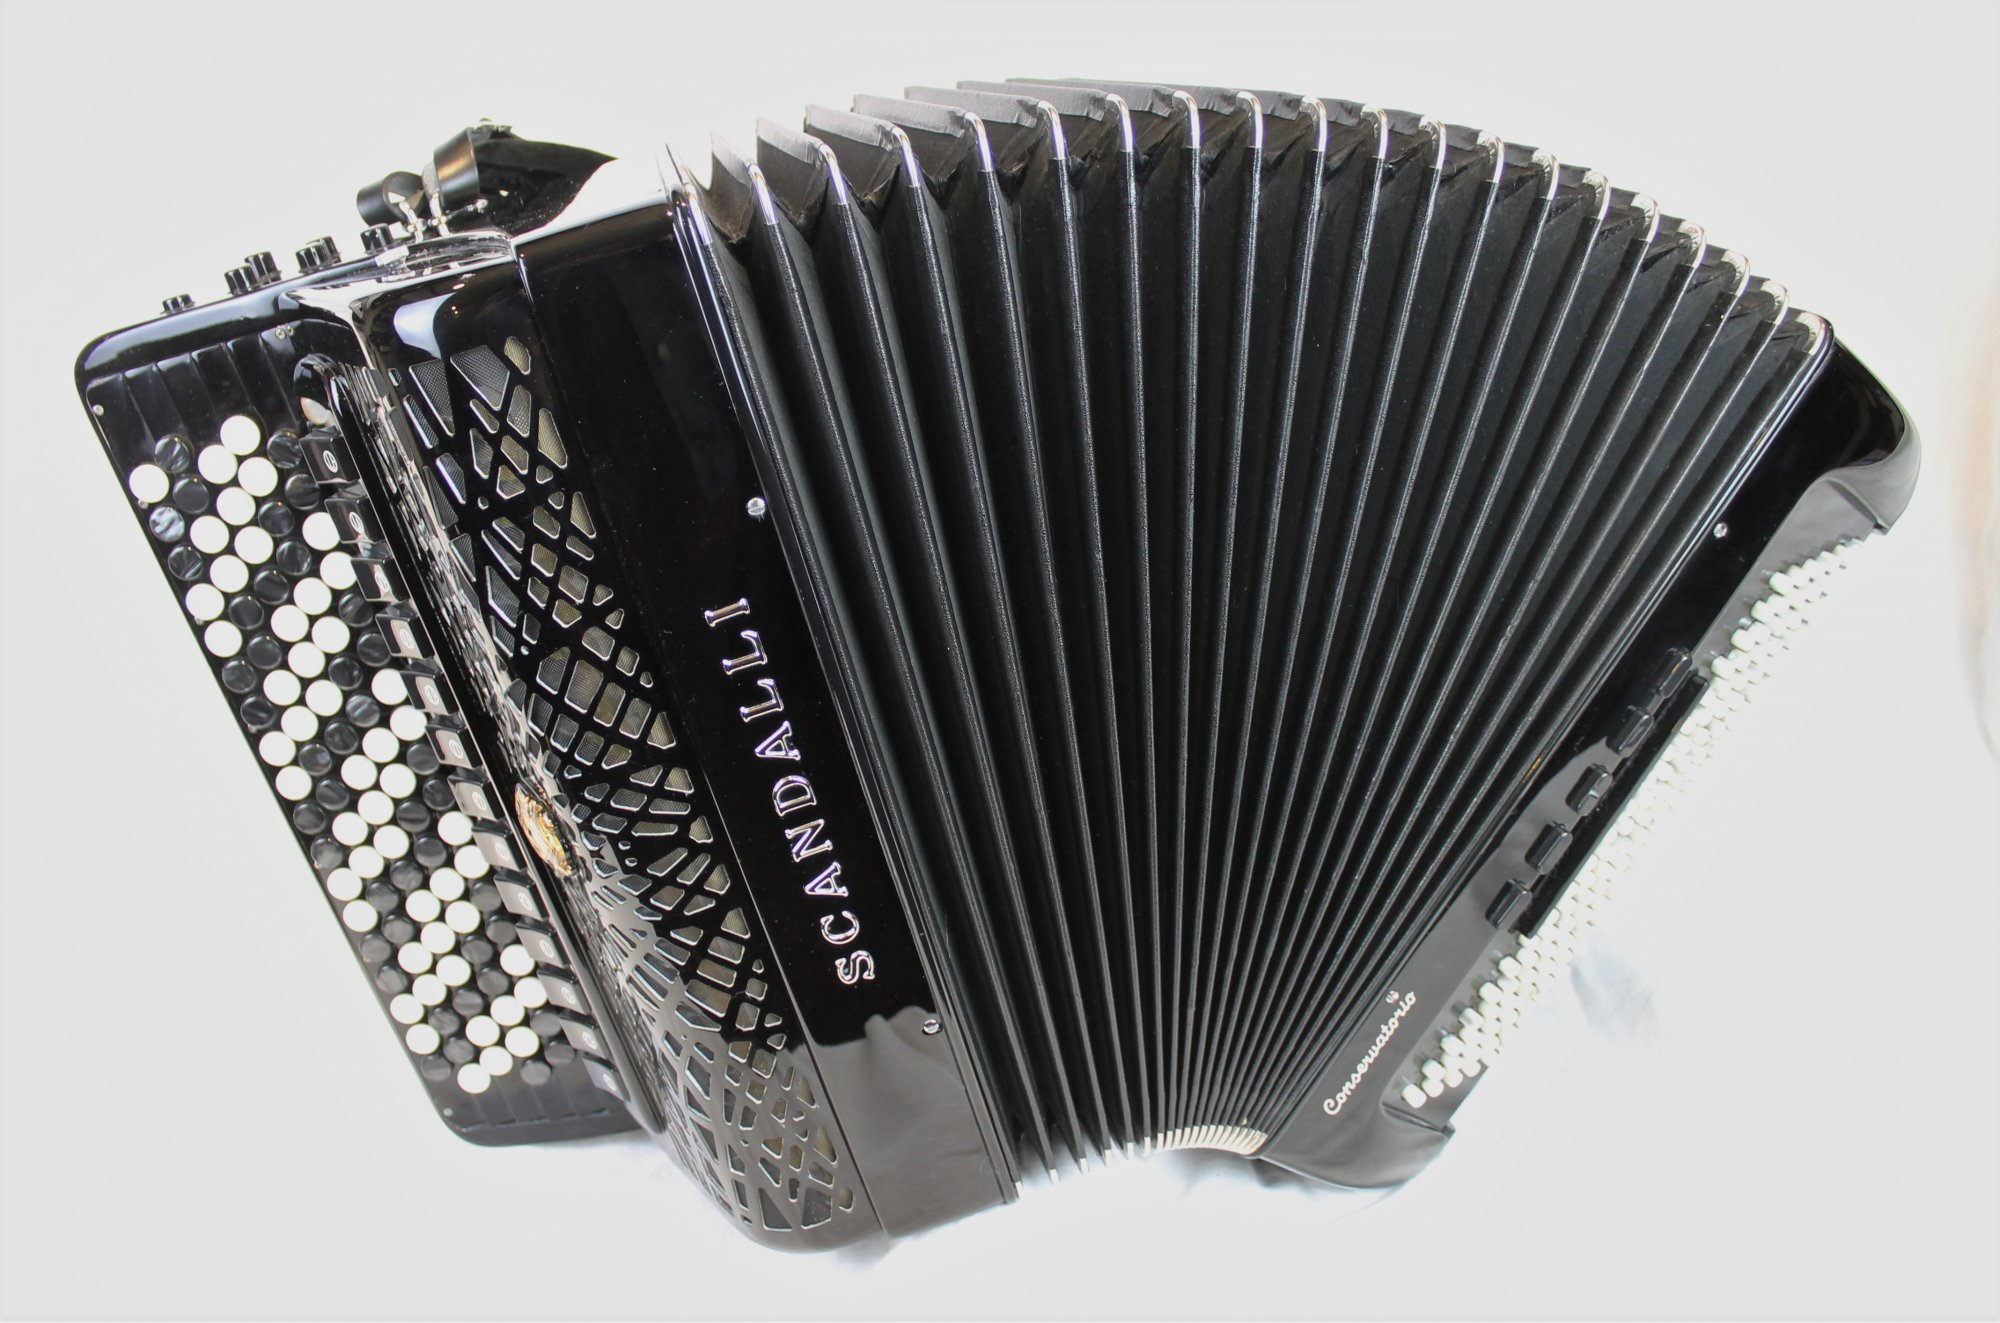 NEW Black Scandalli BJC 442 Compact Chromatic Button Accordion LMMH 92 120